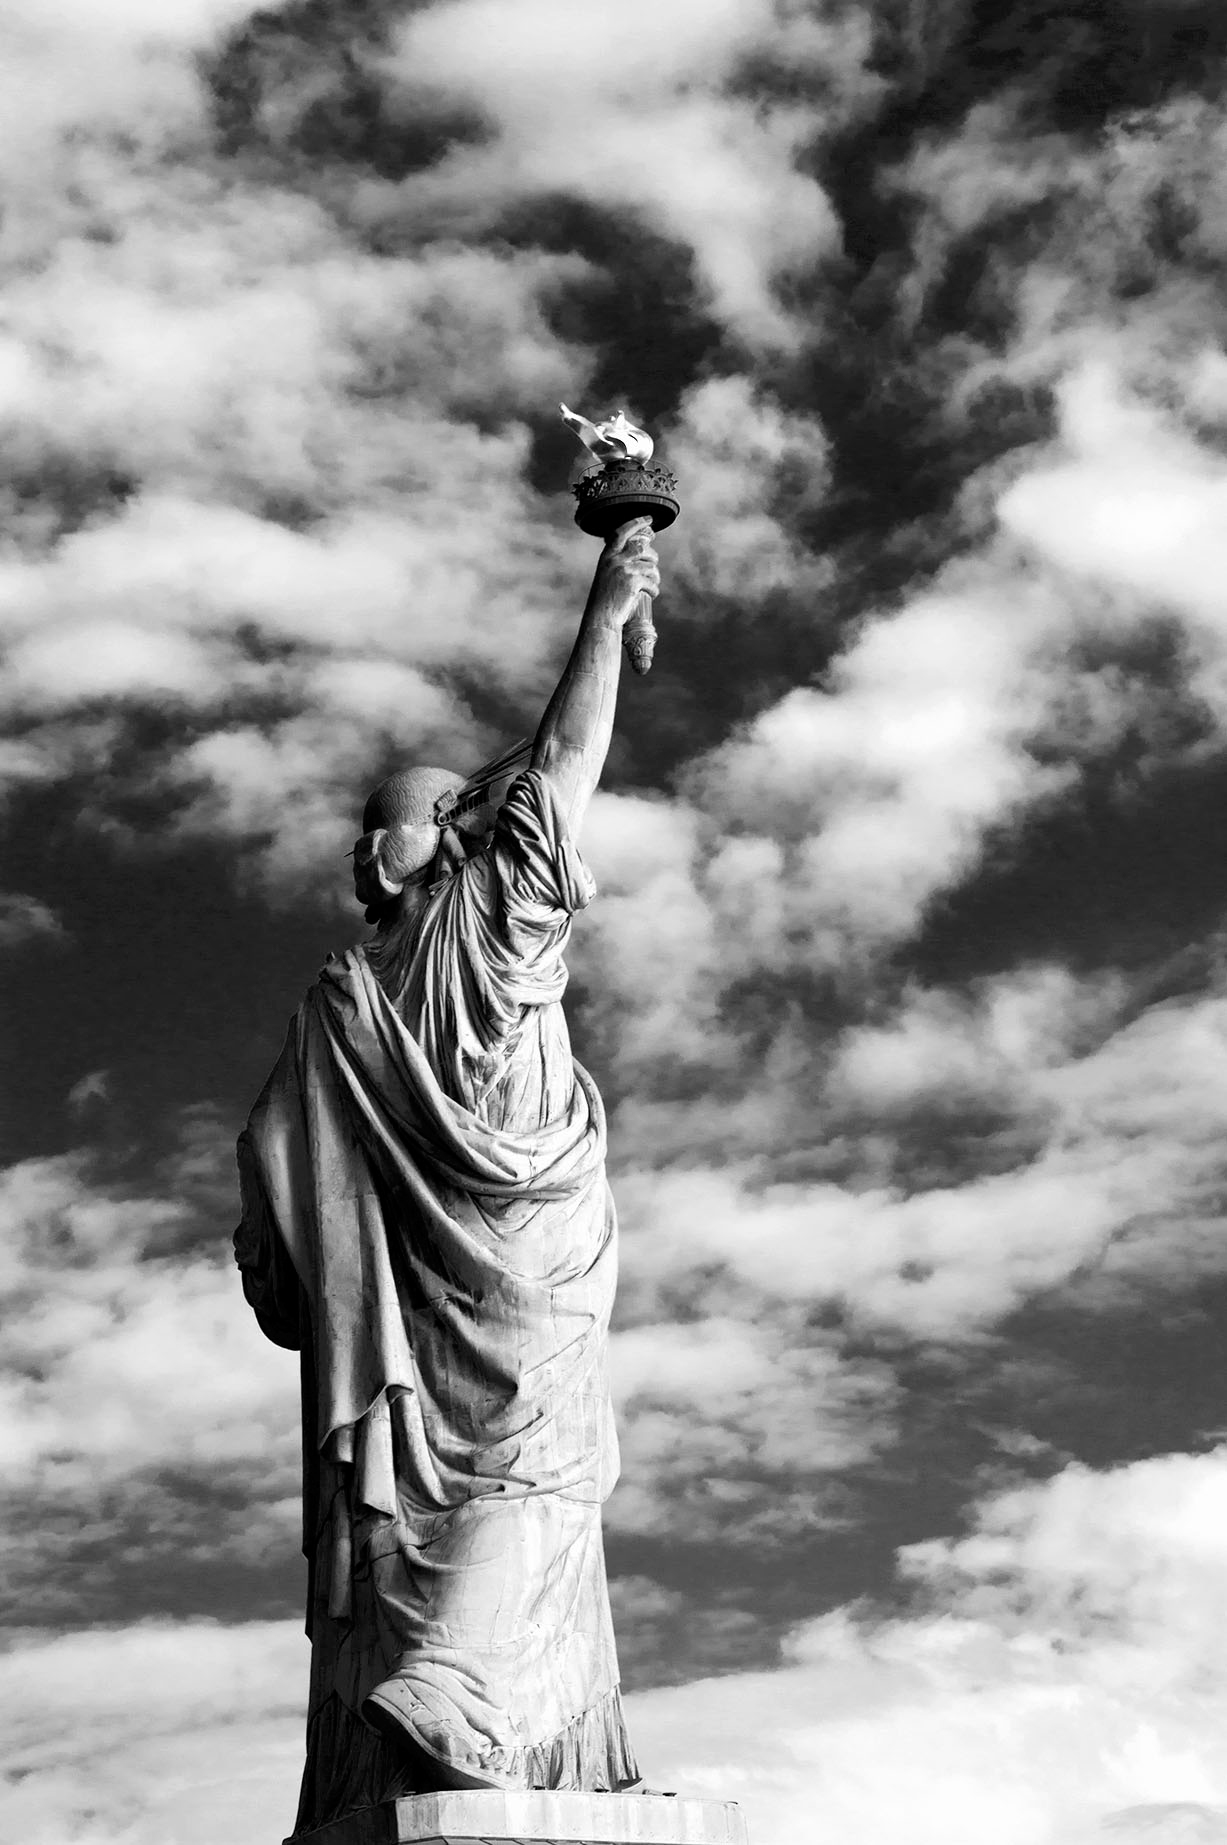 statue of liberty, new york city, Alina Oswald, black and white photography, black and white